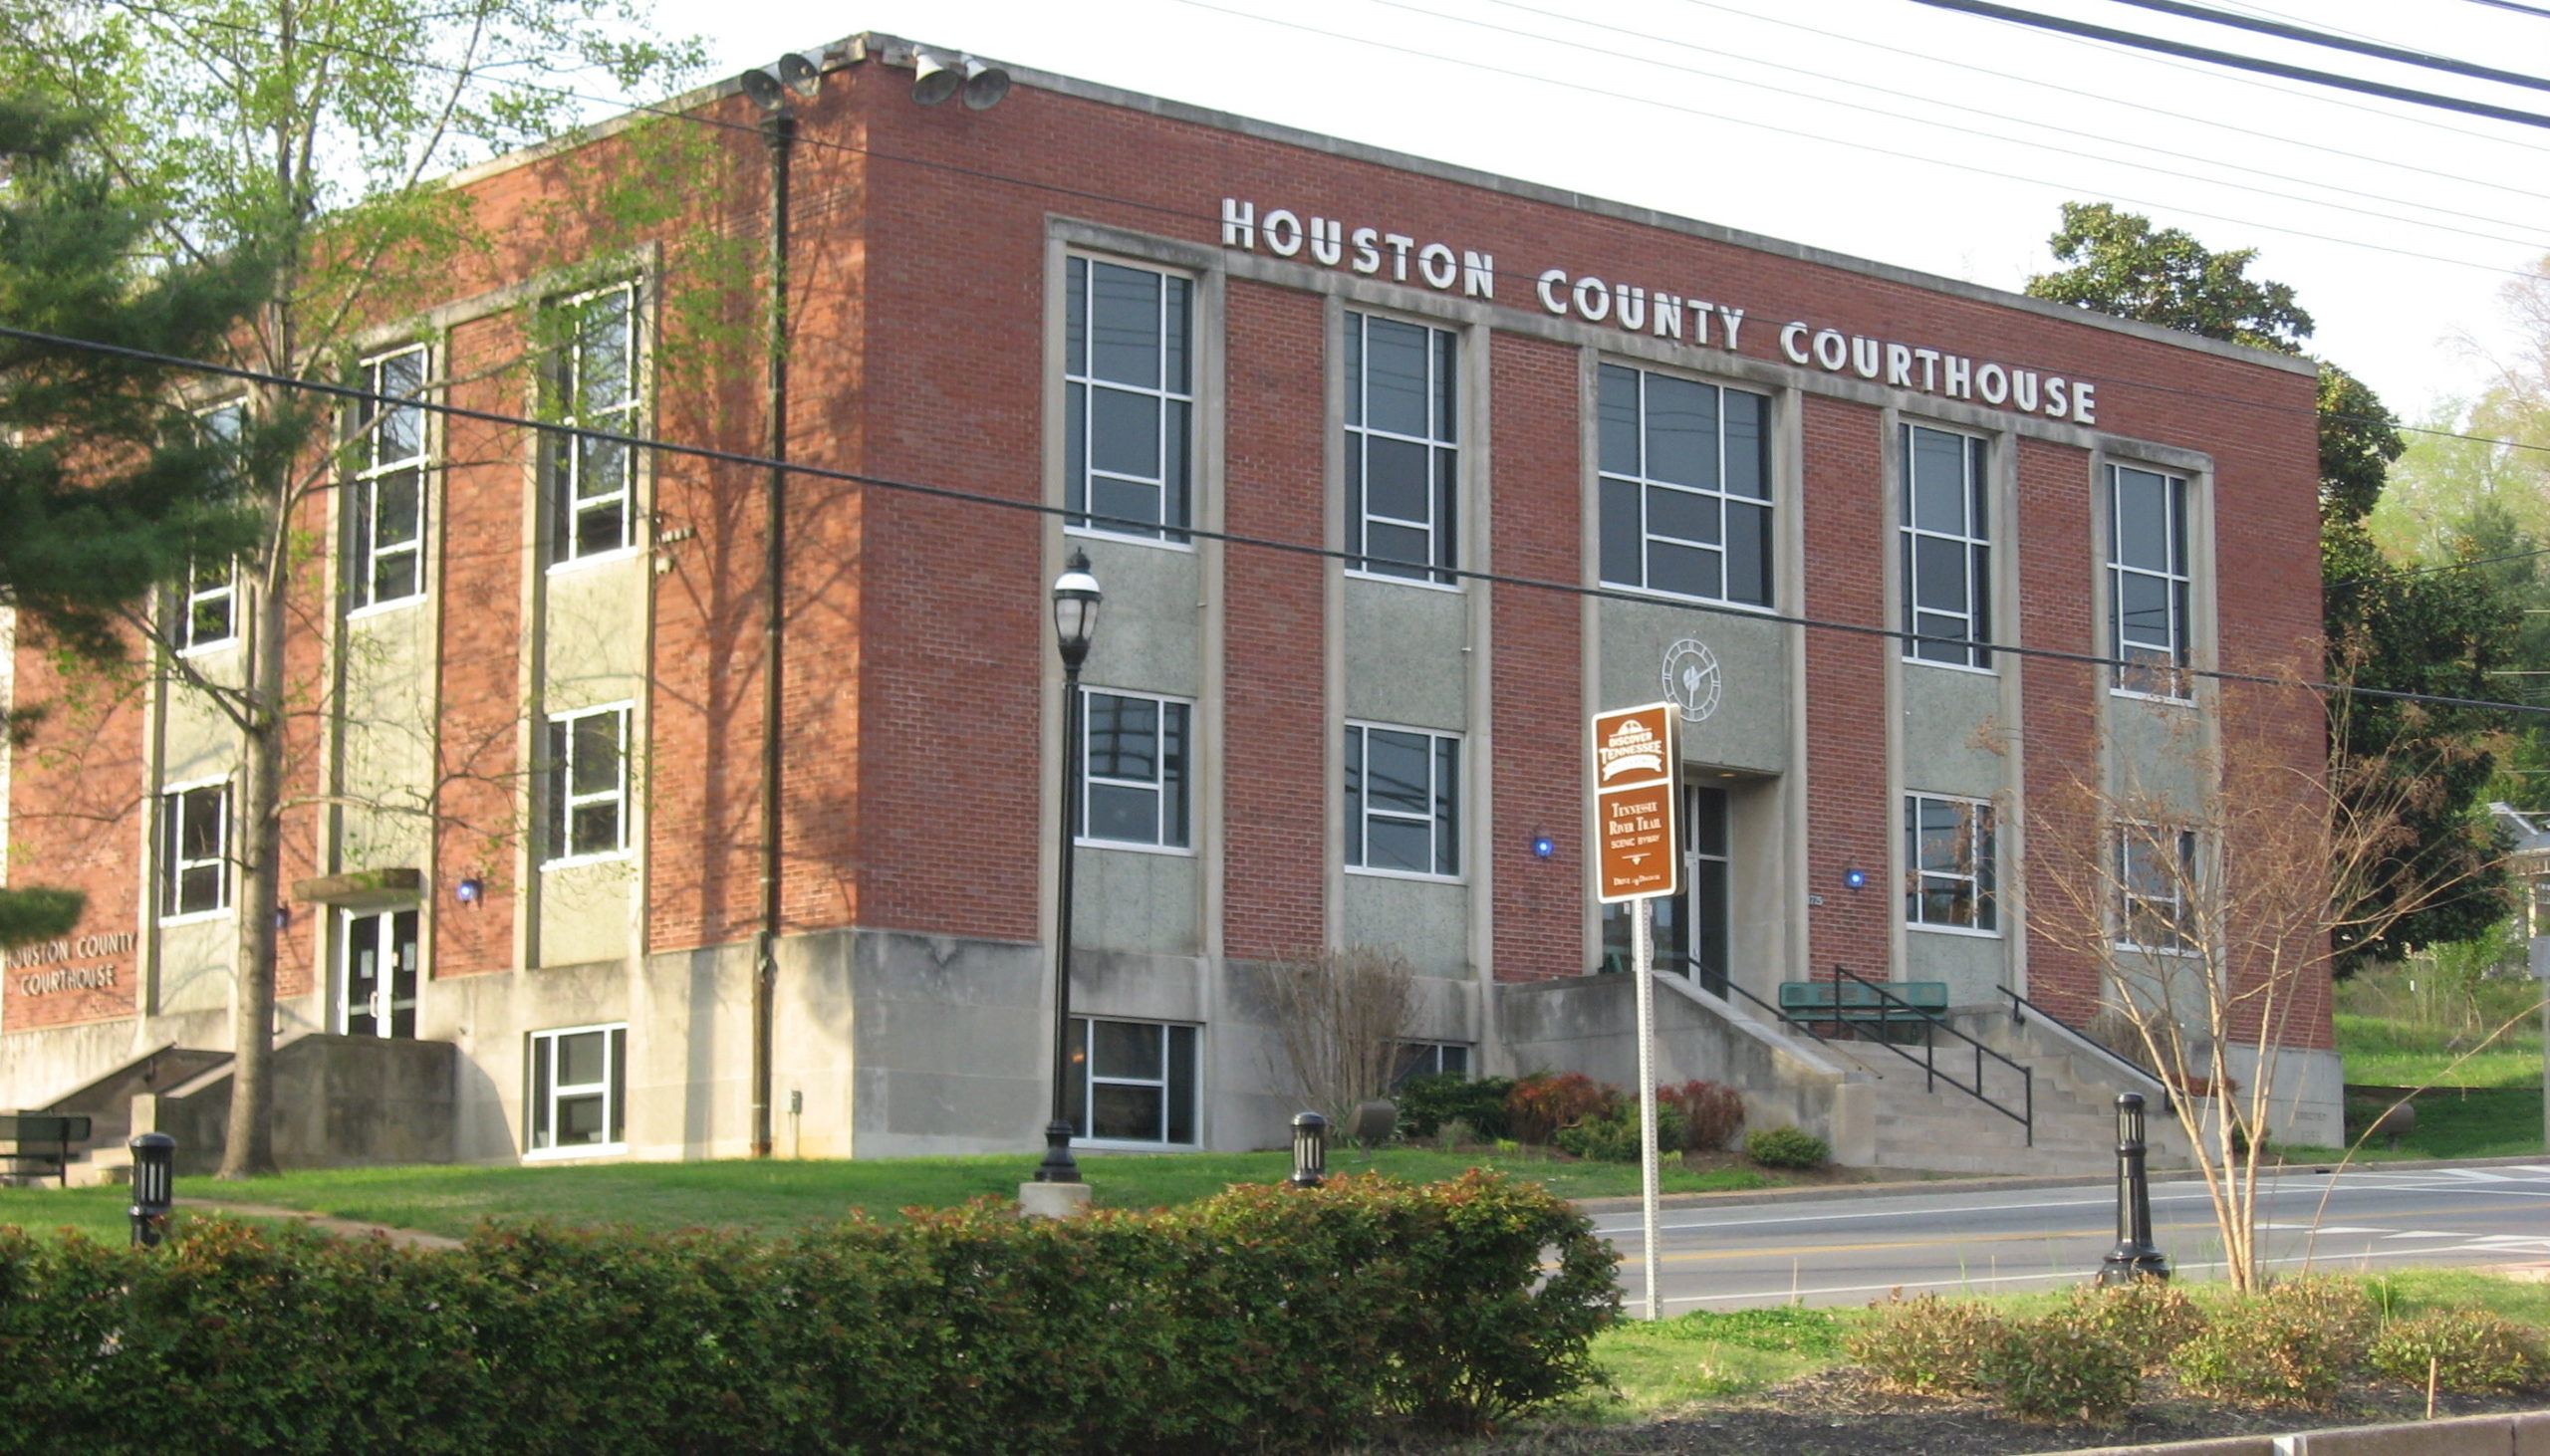 Houston County Courthouse Extension office